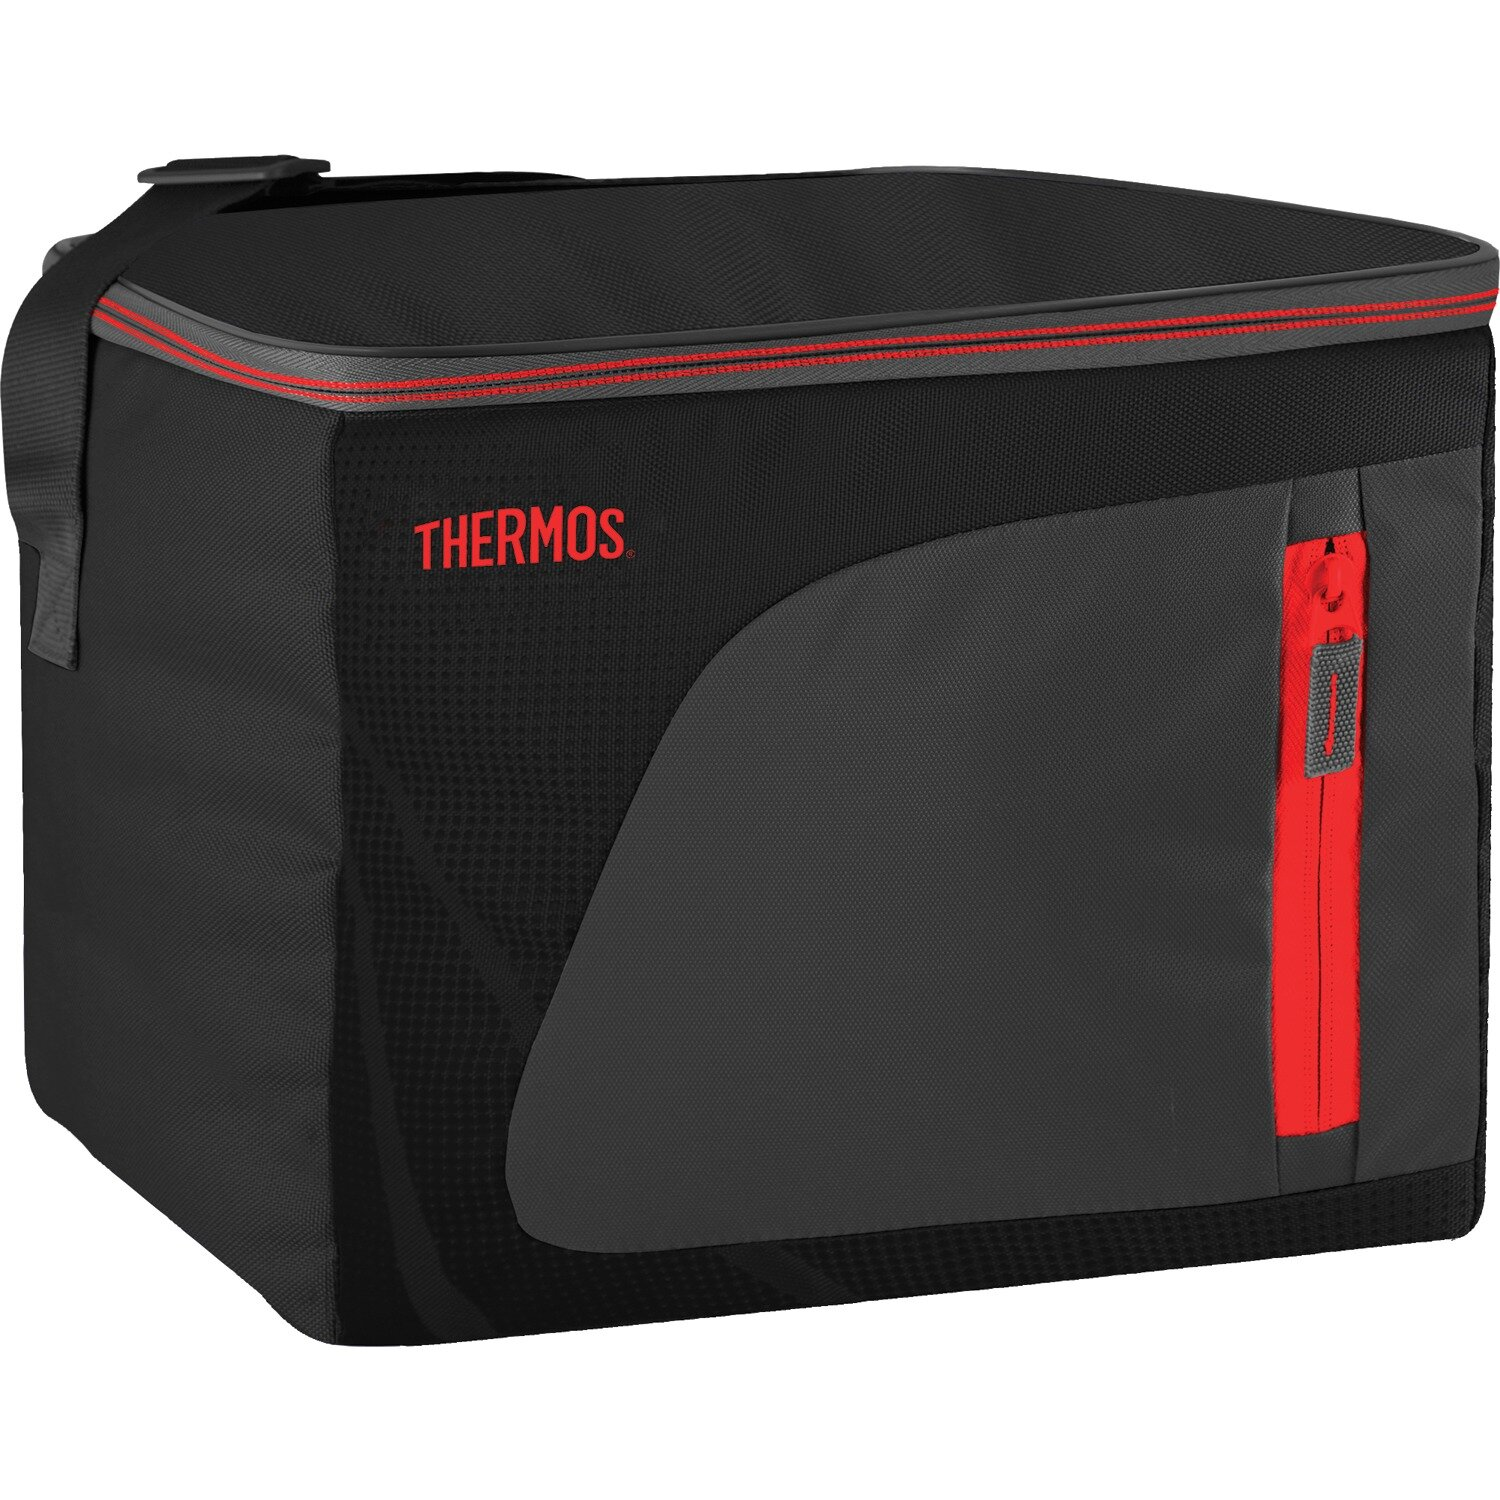 24 CAN Thermos Radiance Black Cooler BRAND NEW